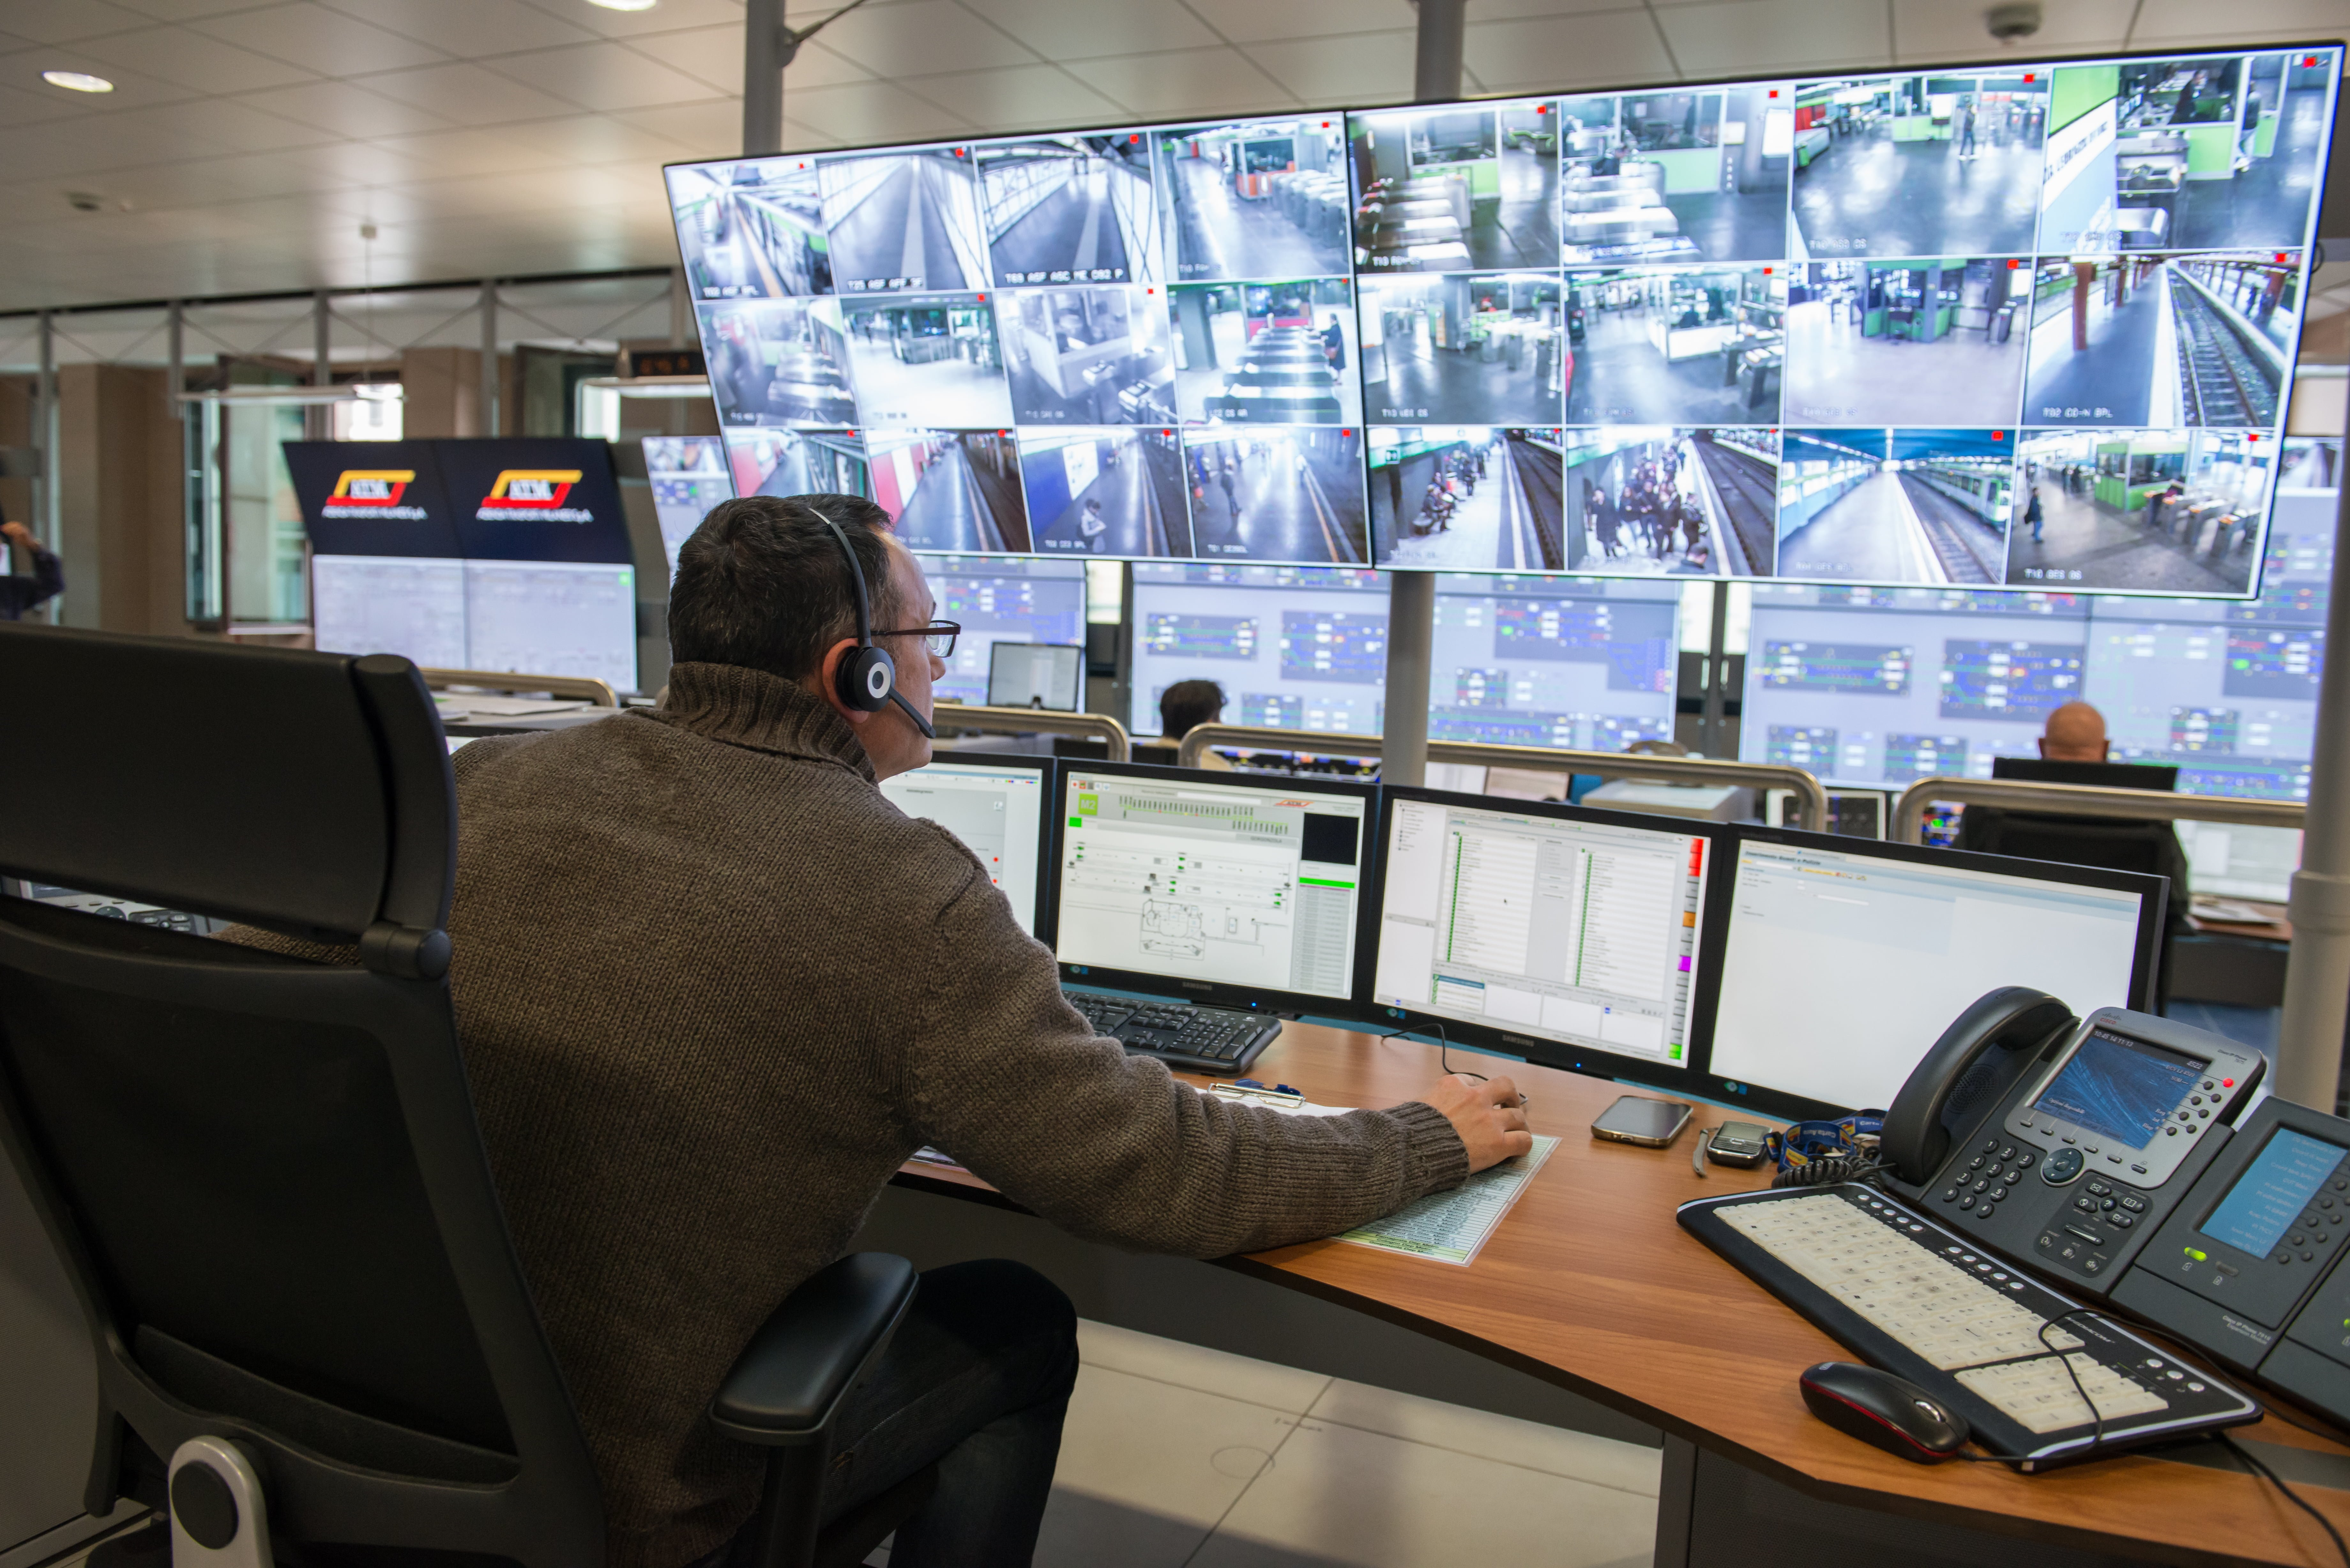 Remote Cctv Monitoring Wrs Solutions